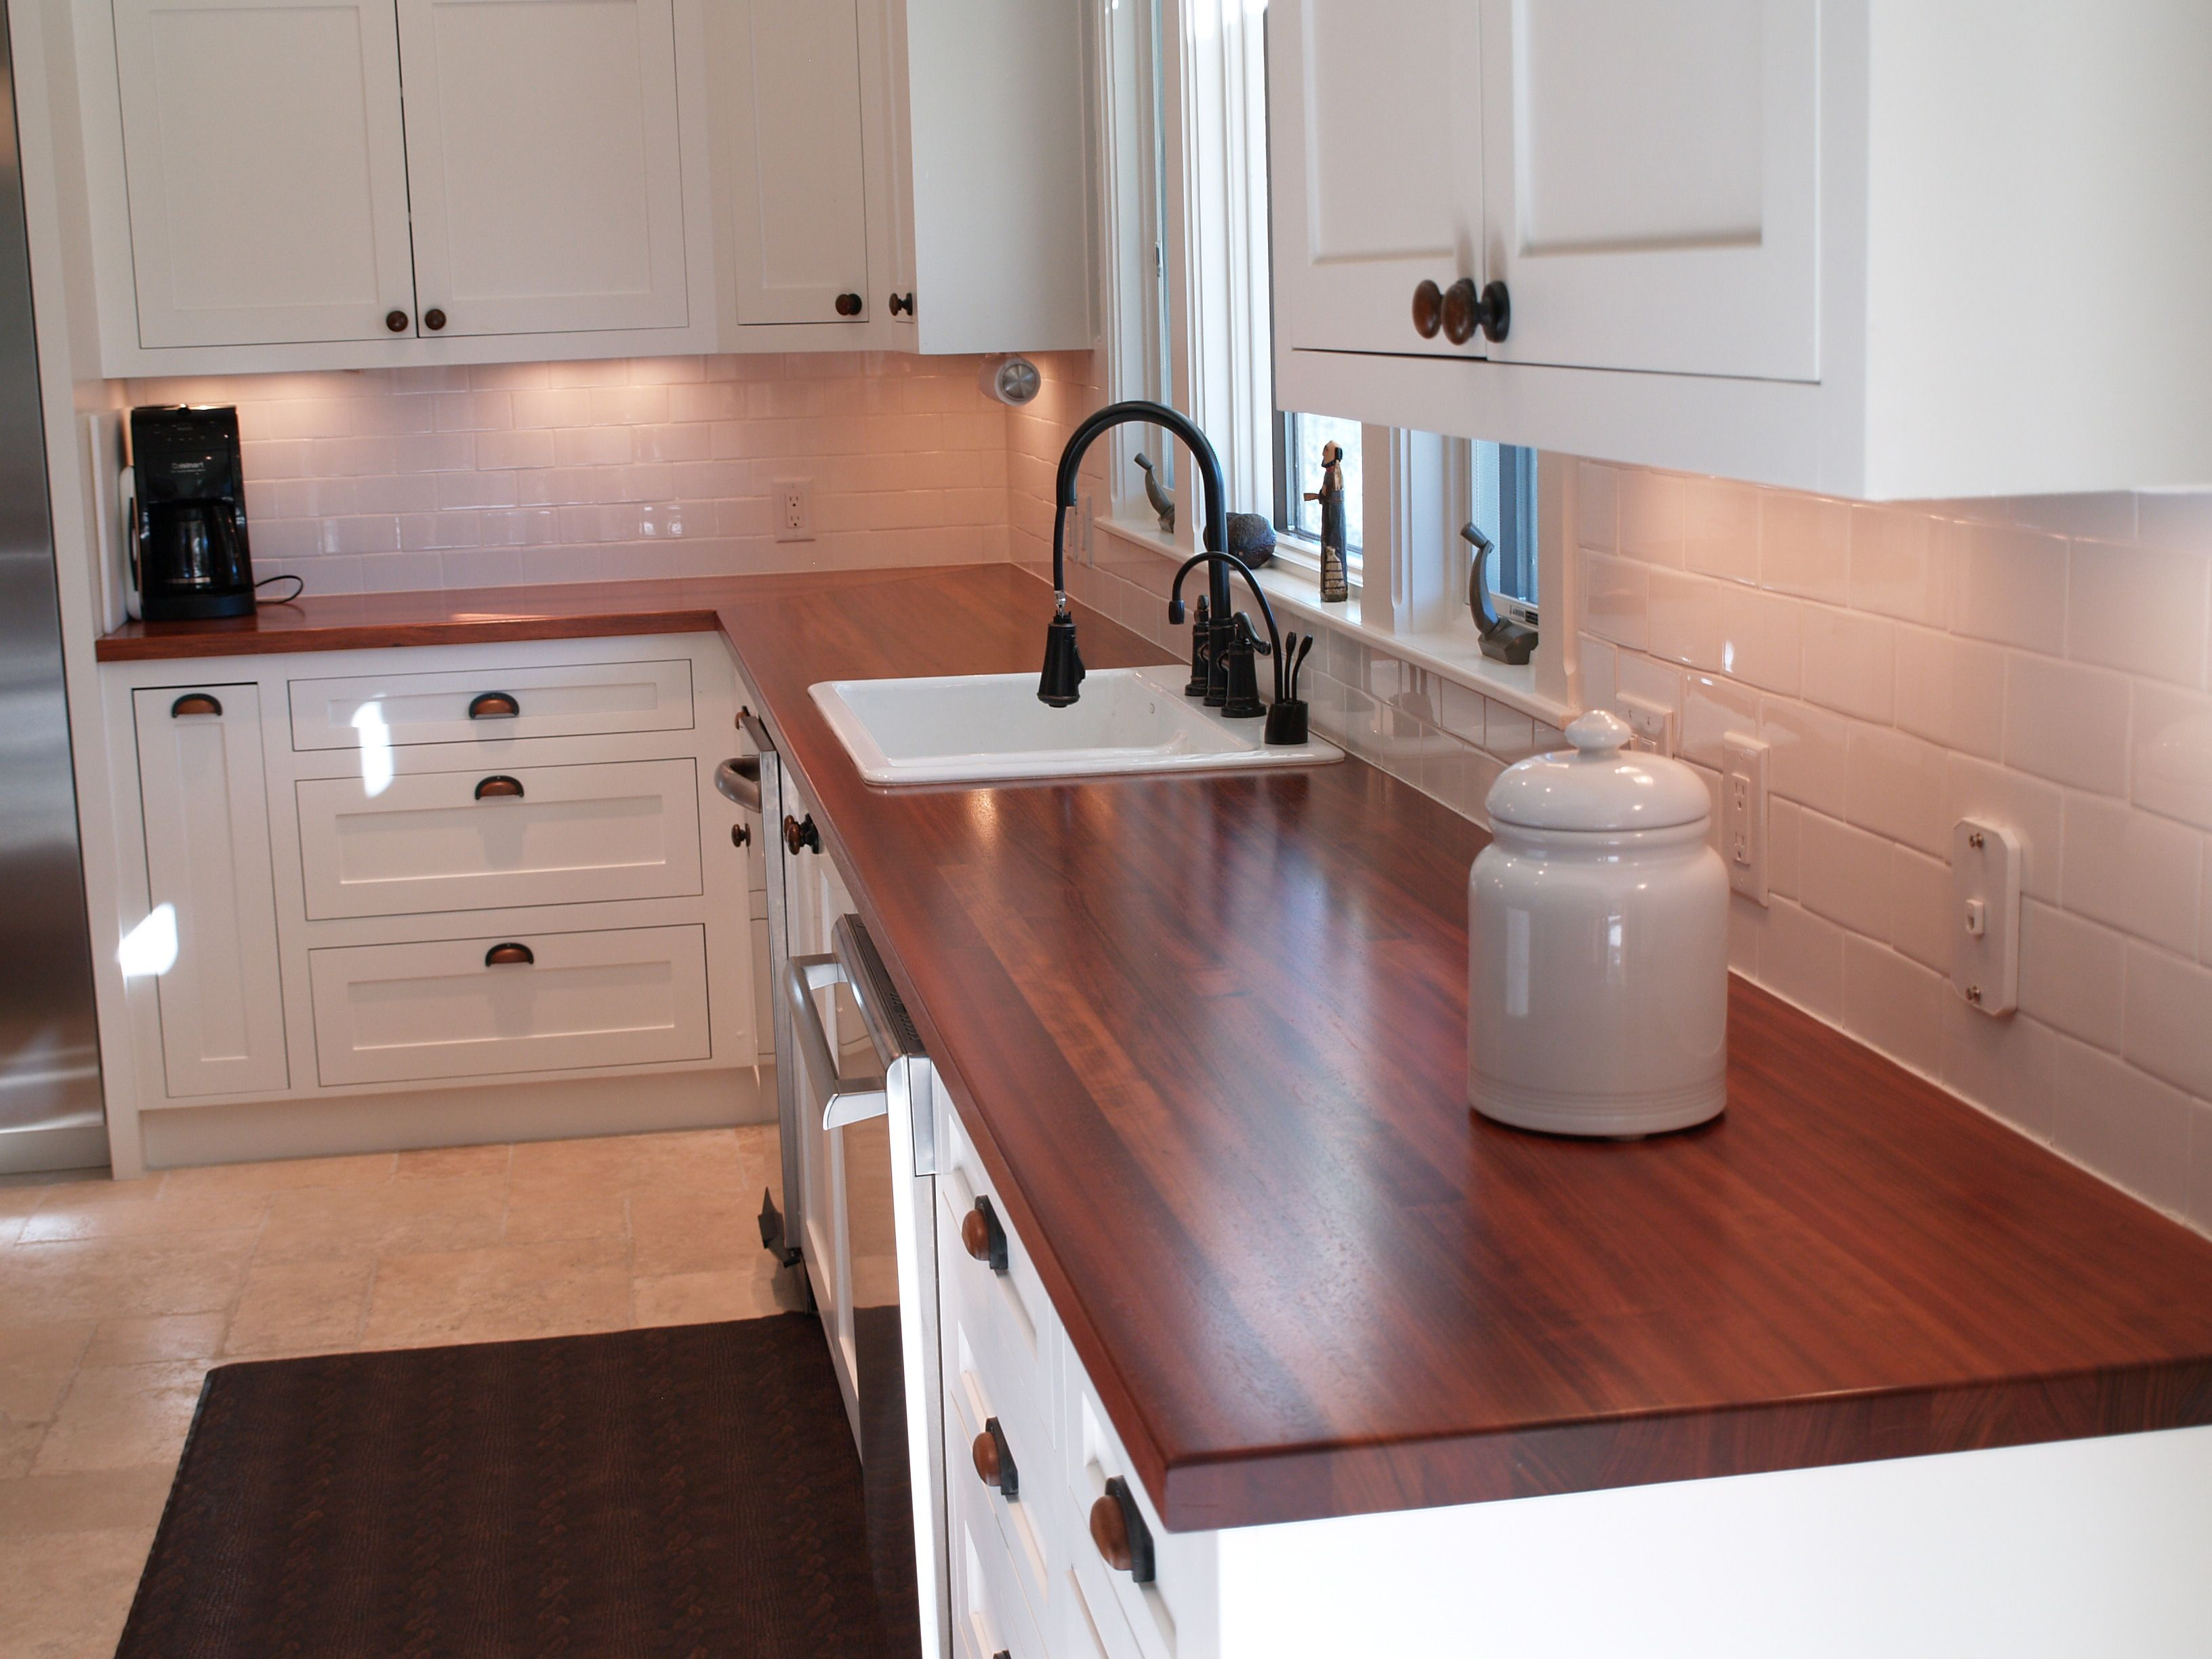 Custom Solid Wood Edge Grain Jatoba Counter Tops With Top Mount Sink And Mitre Joint Connection Wood Countertops Countertops Countertop Makeover